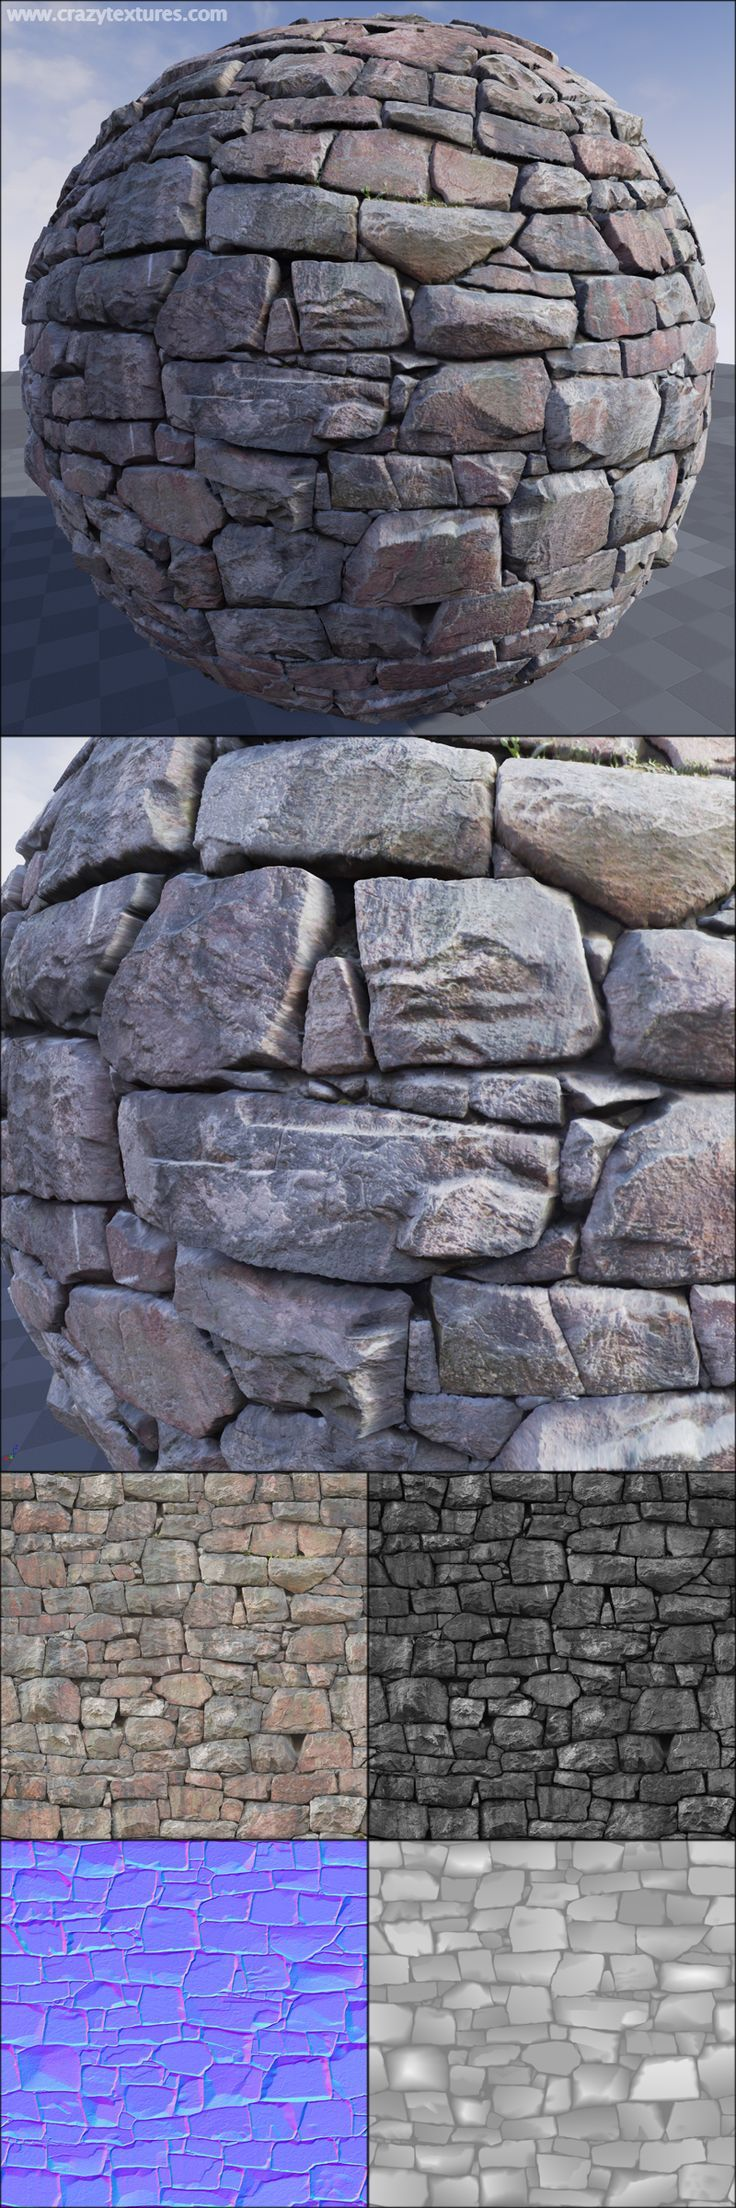 Stones #16. A seamless stones wall texture from www.CrazyTextures.com This and other my textures you can find on the UE Marketplace: https://www.unrealengine.com/marketplace/38-architectural-textures